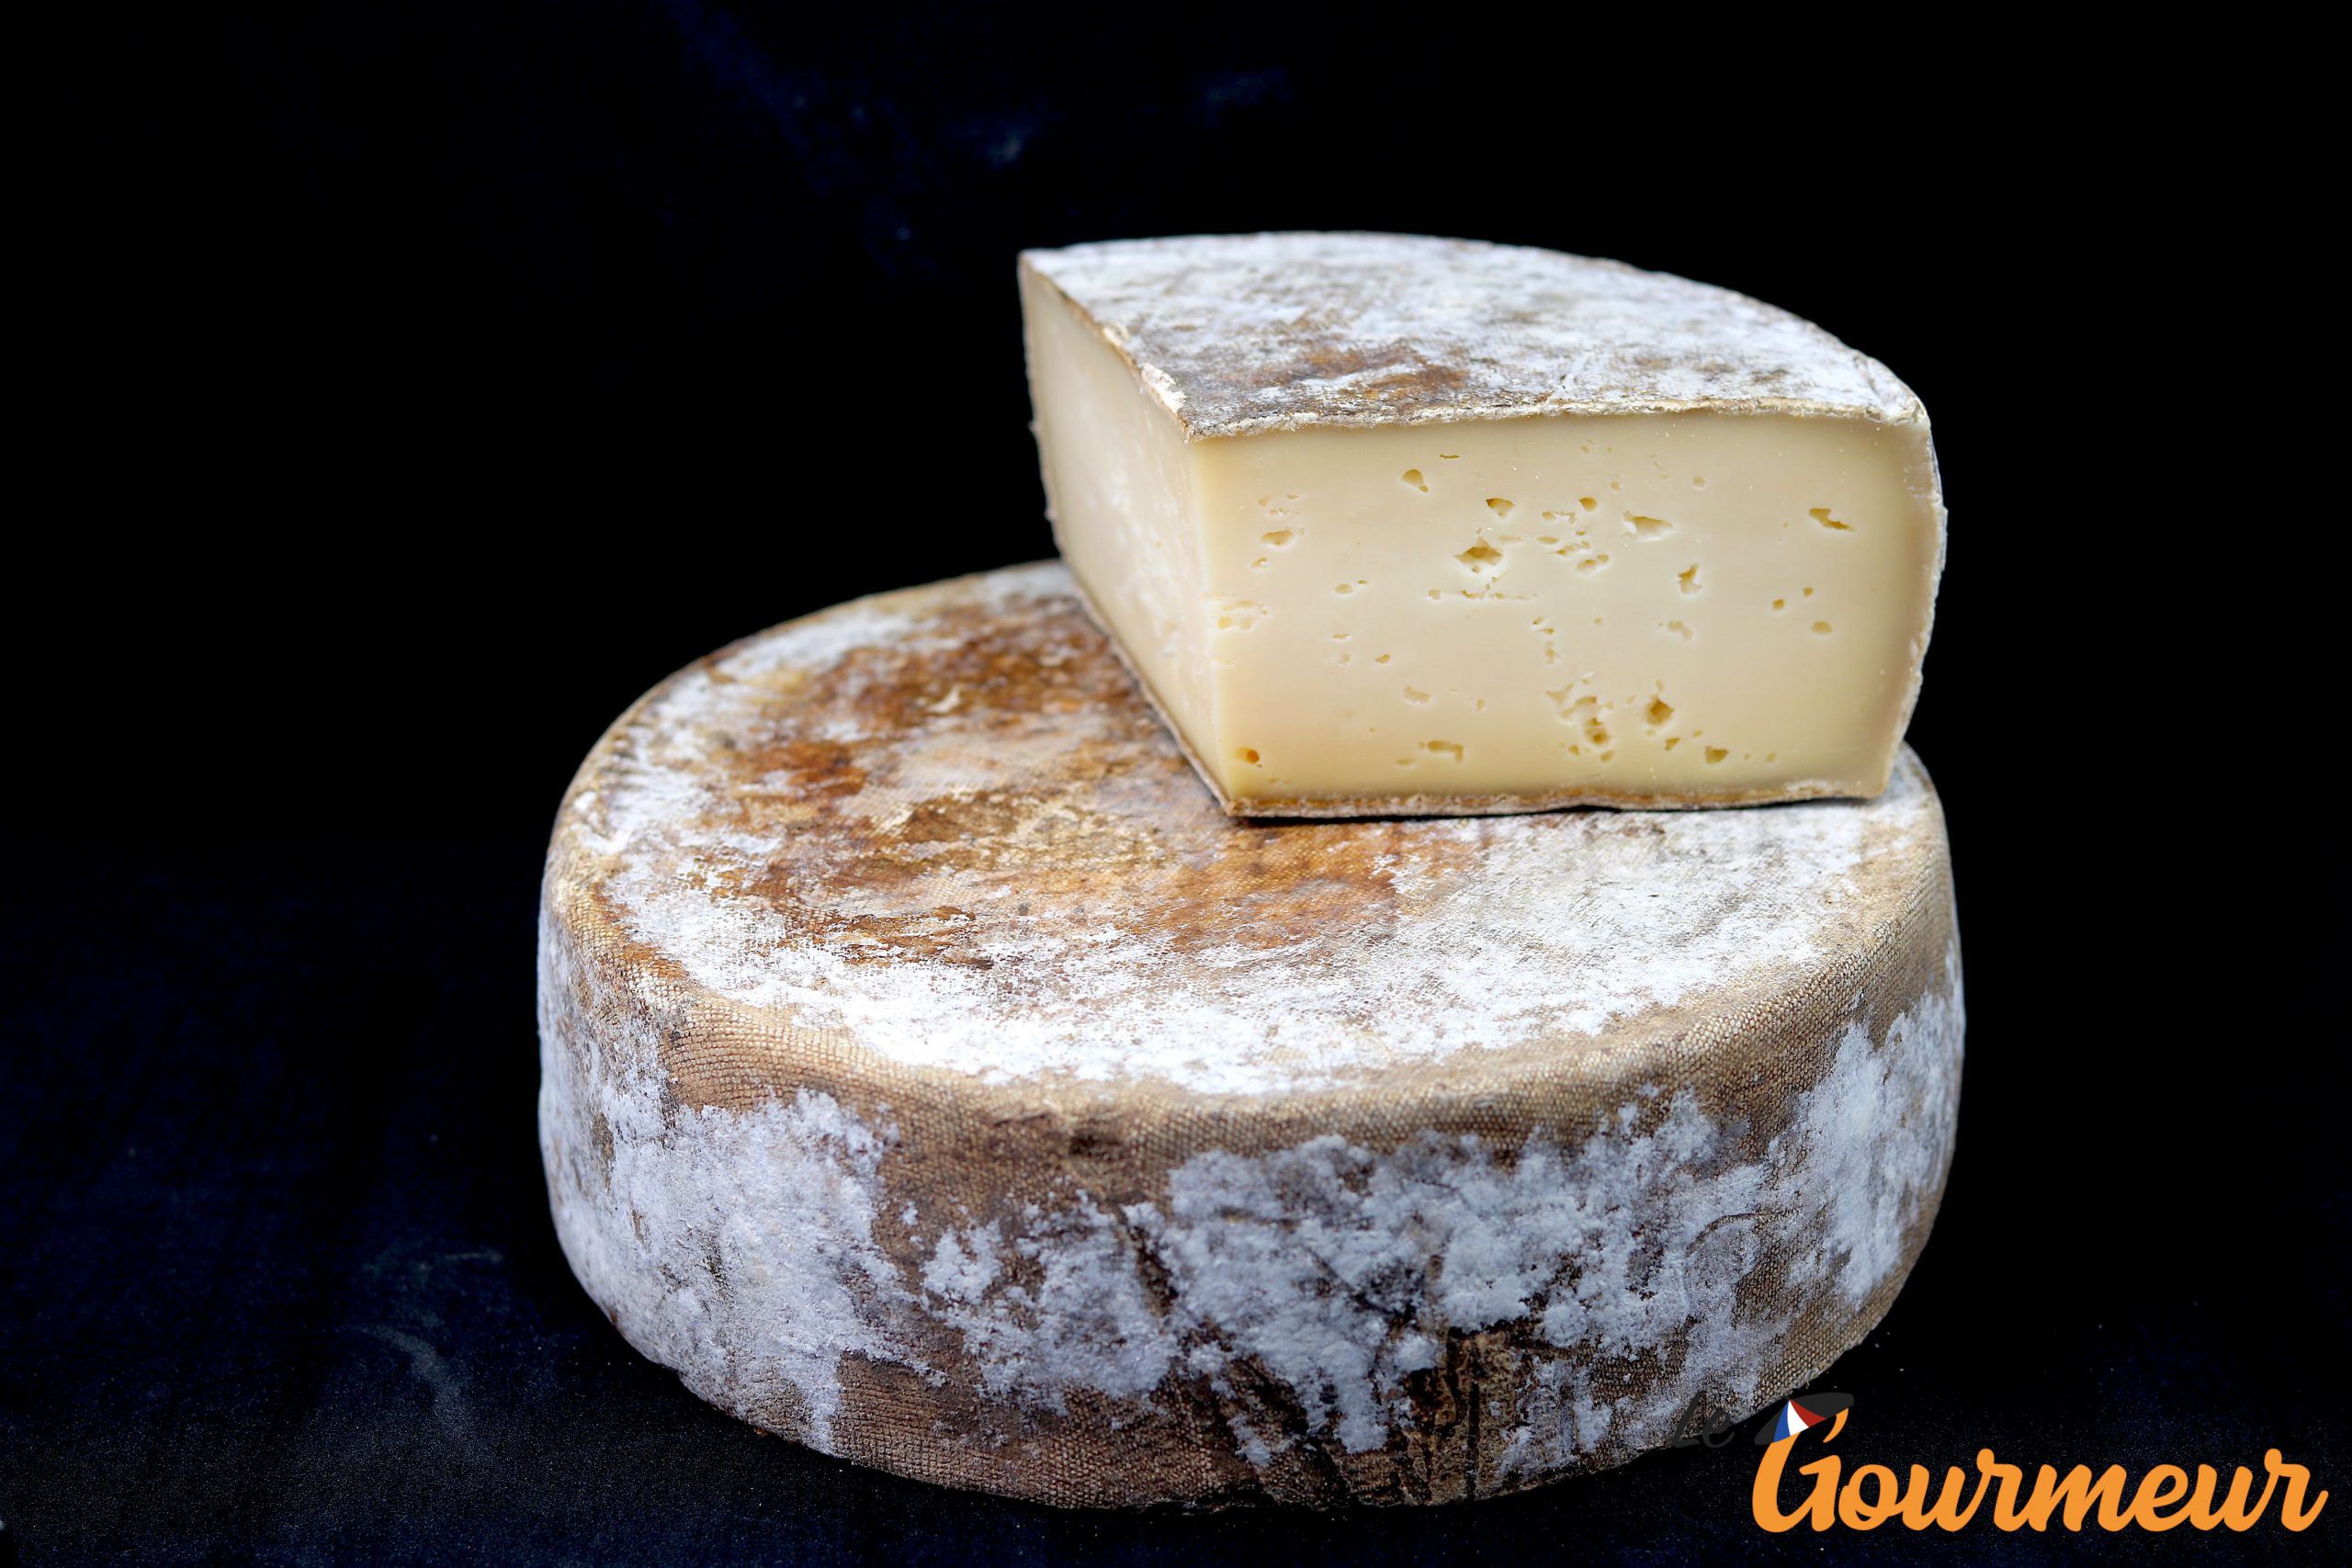 tomme au cidre fromage picardie